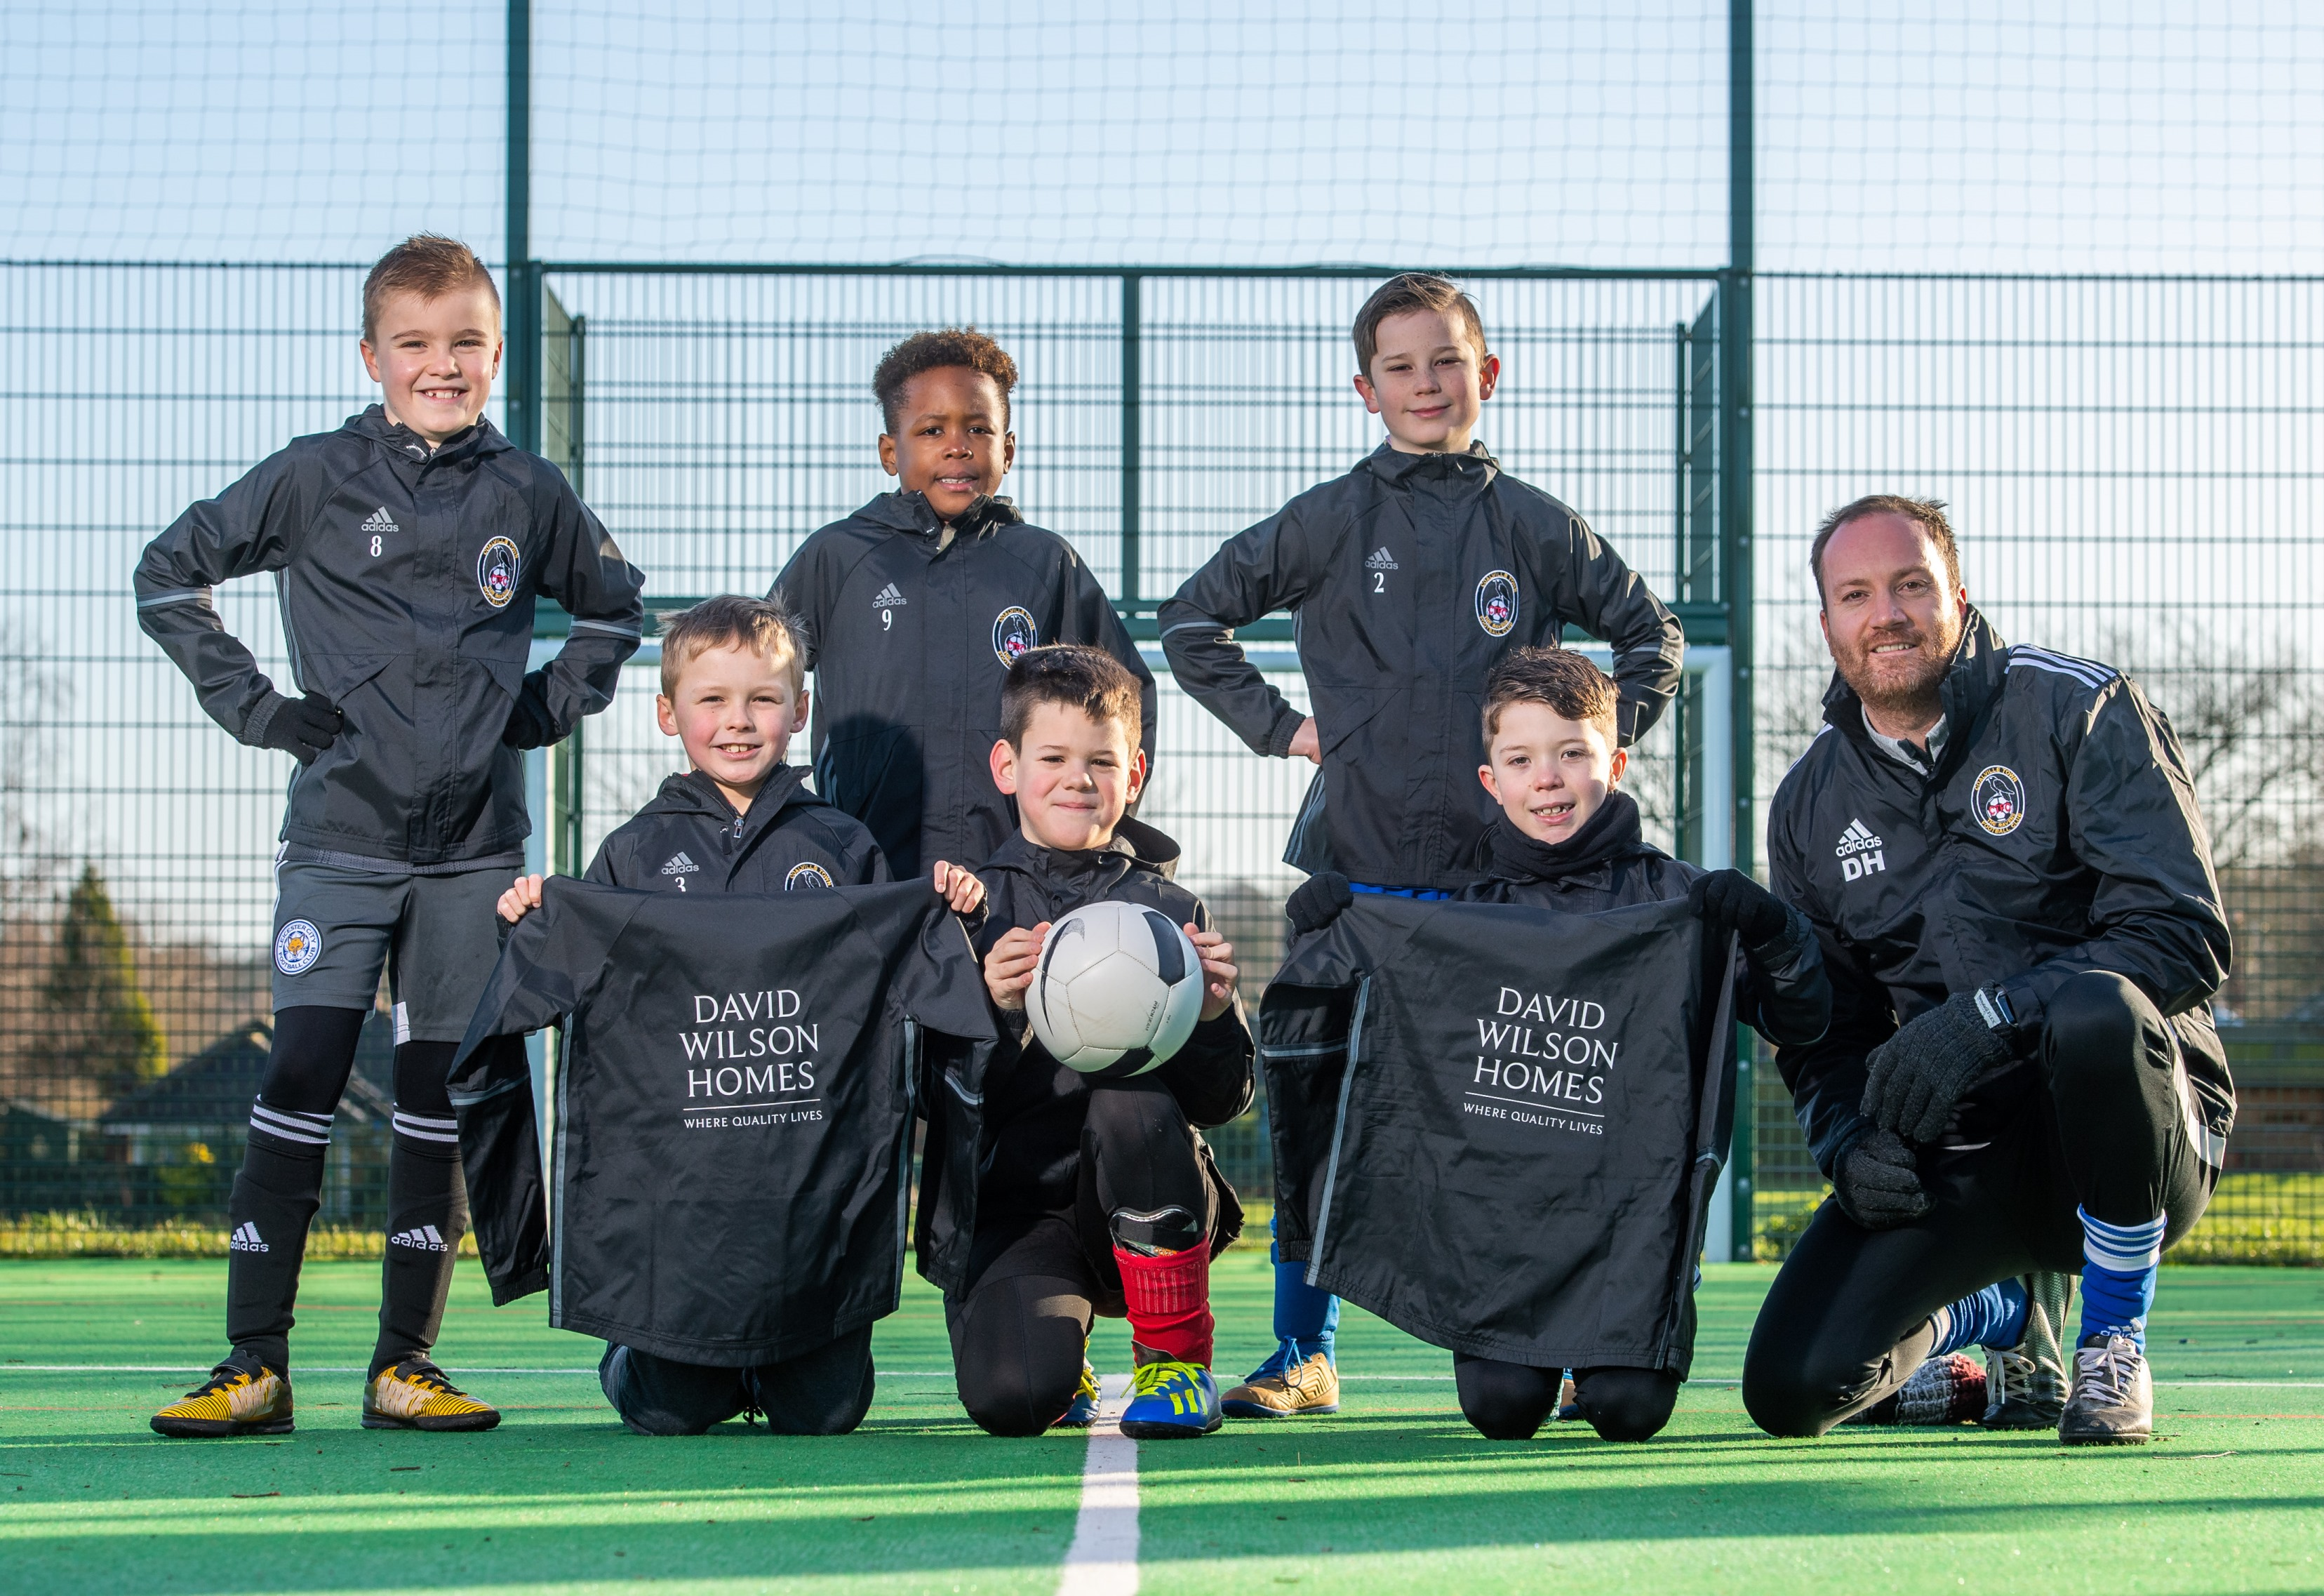 Coalville Football Club Scores New Sponsorship With David Wilson Homes